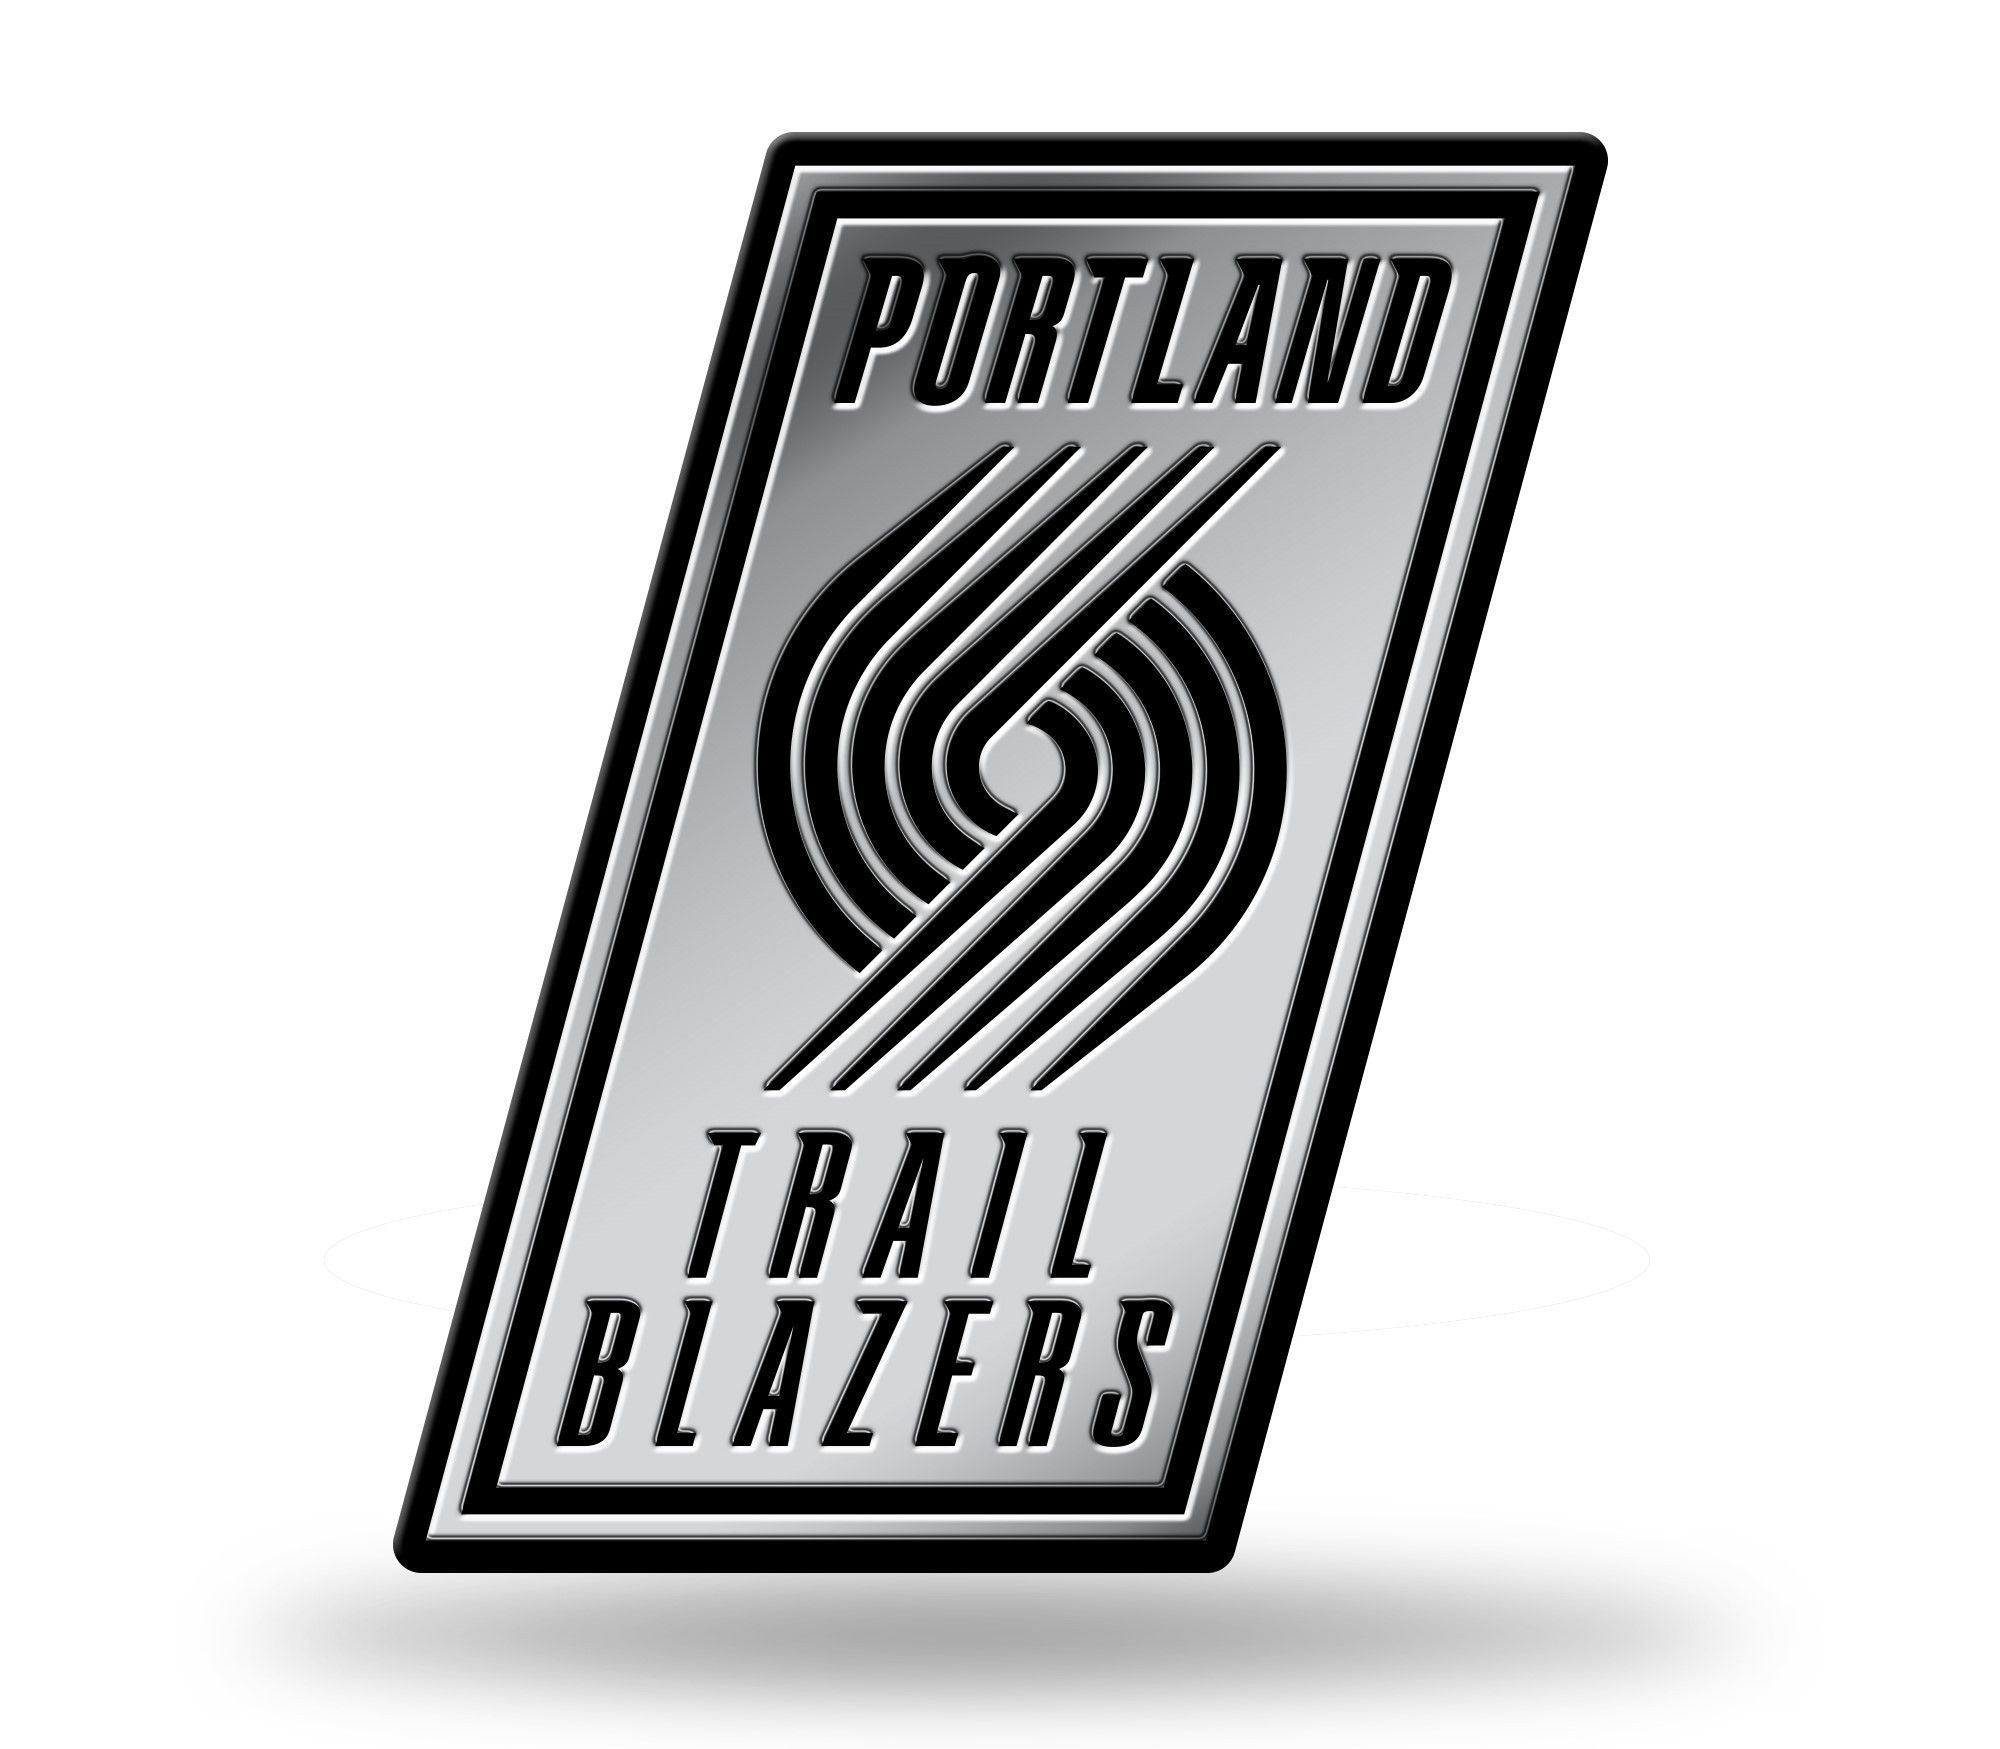 Portland Trail Blazers Logo D Chrome Auto Emblem NEW Truck Or - Custom vinyl decals portland oregon